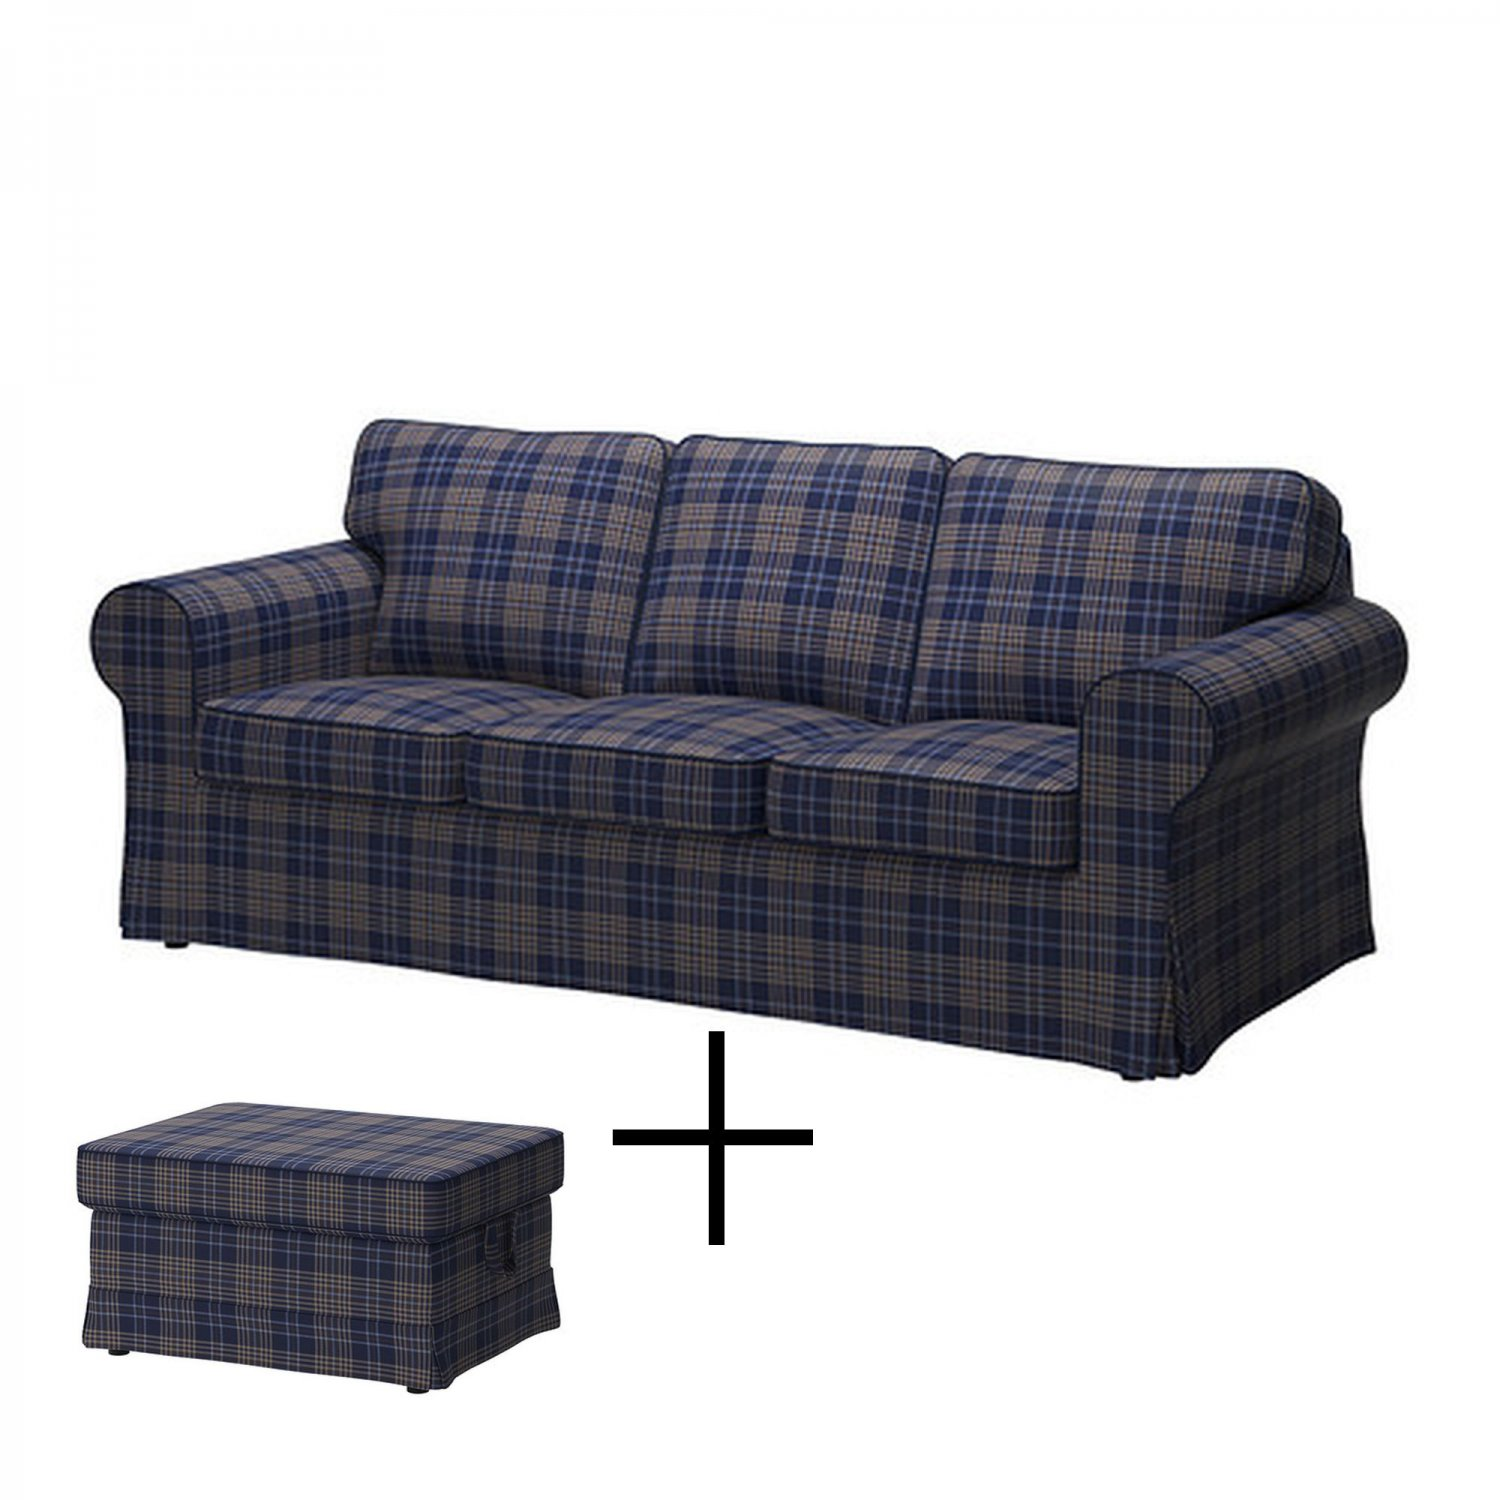 Ikea Ektorp 3 Seat Sofa And Footstool Cover Slipcover